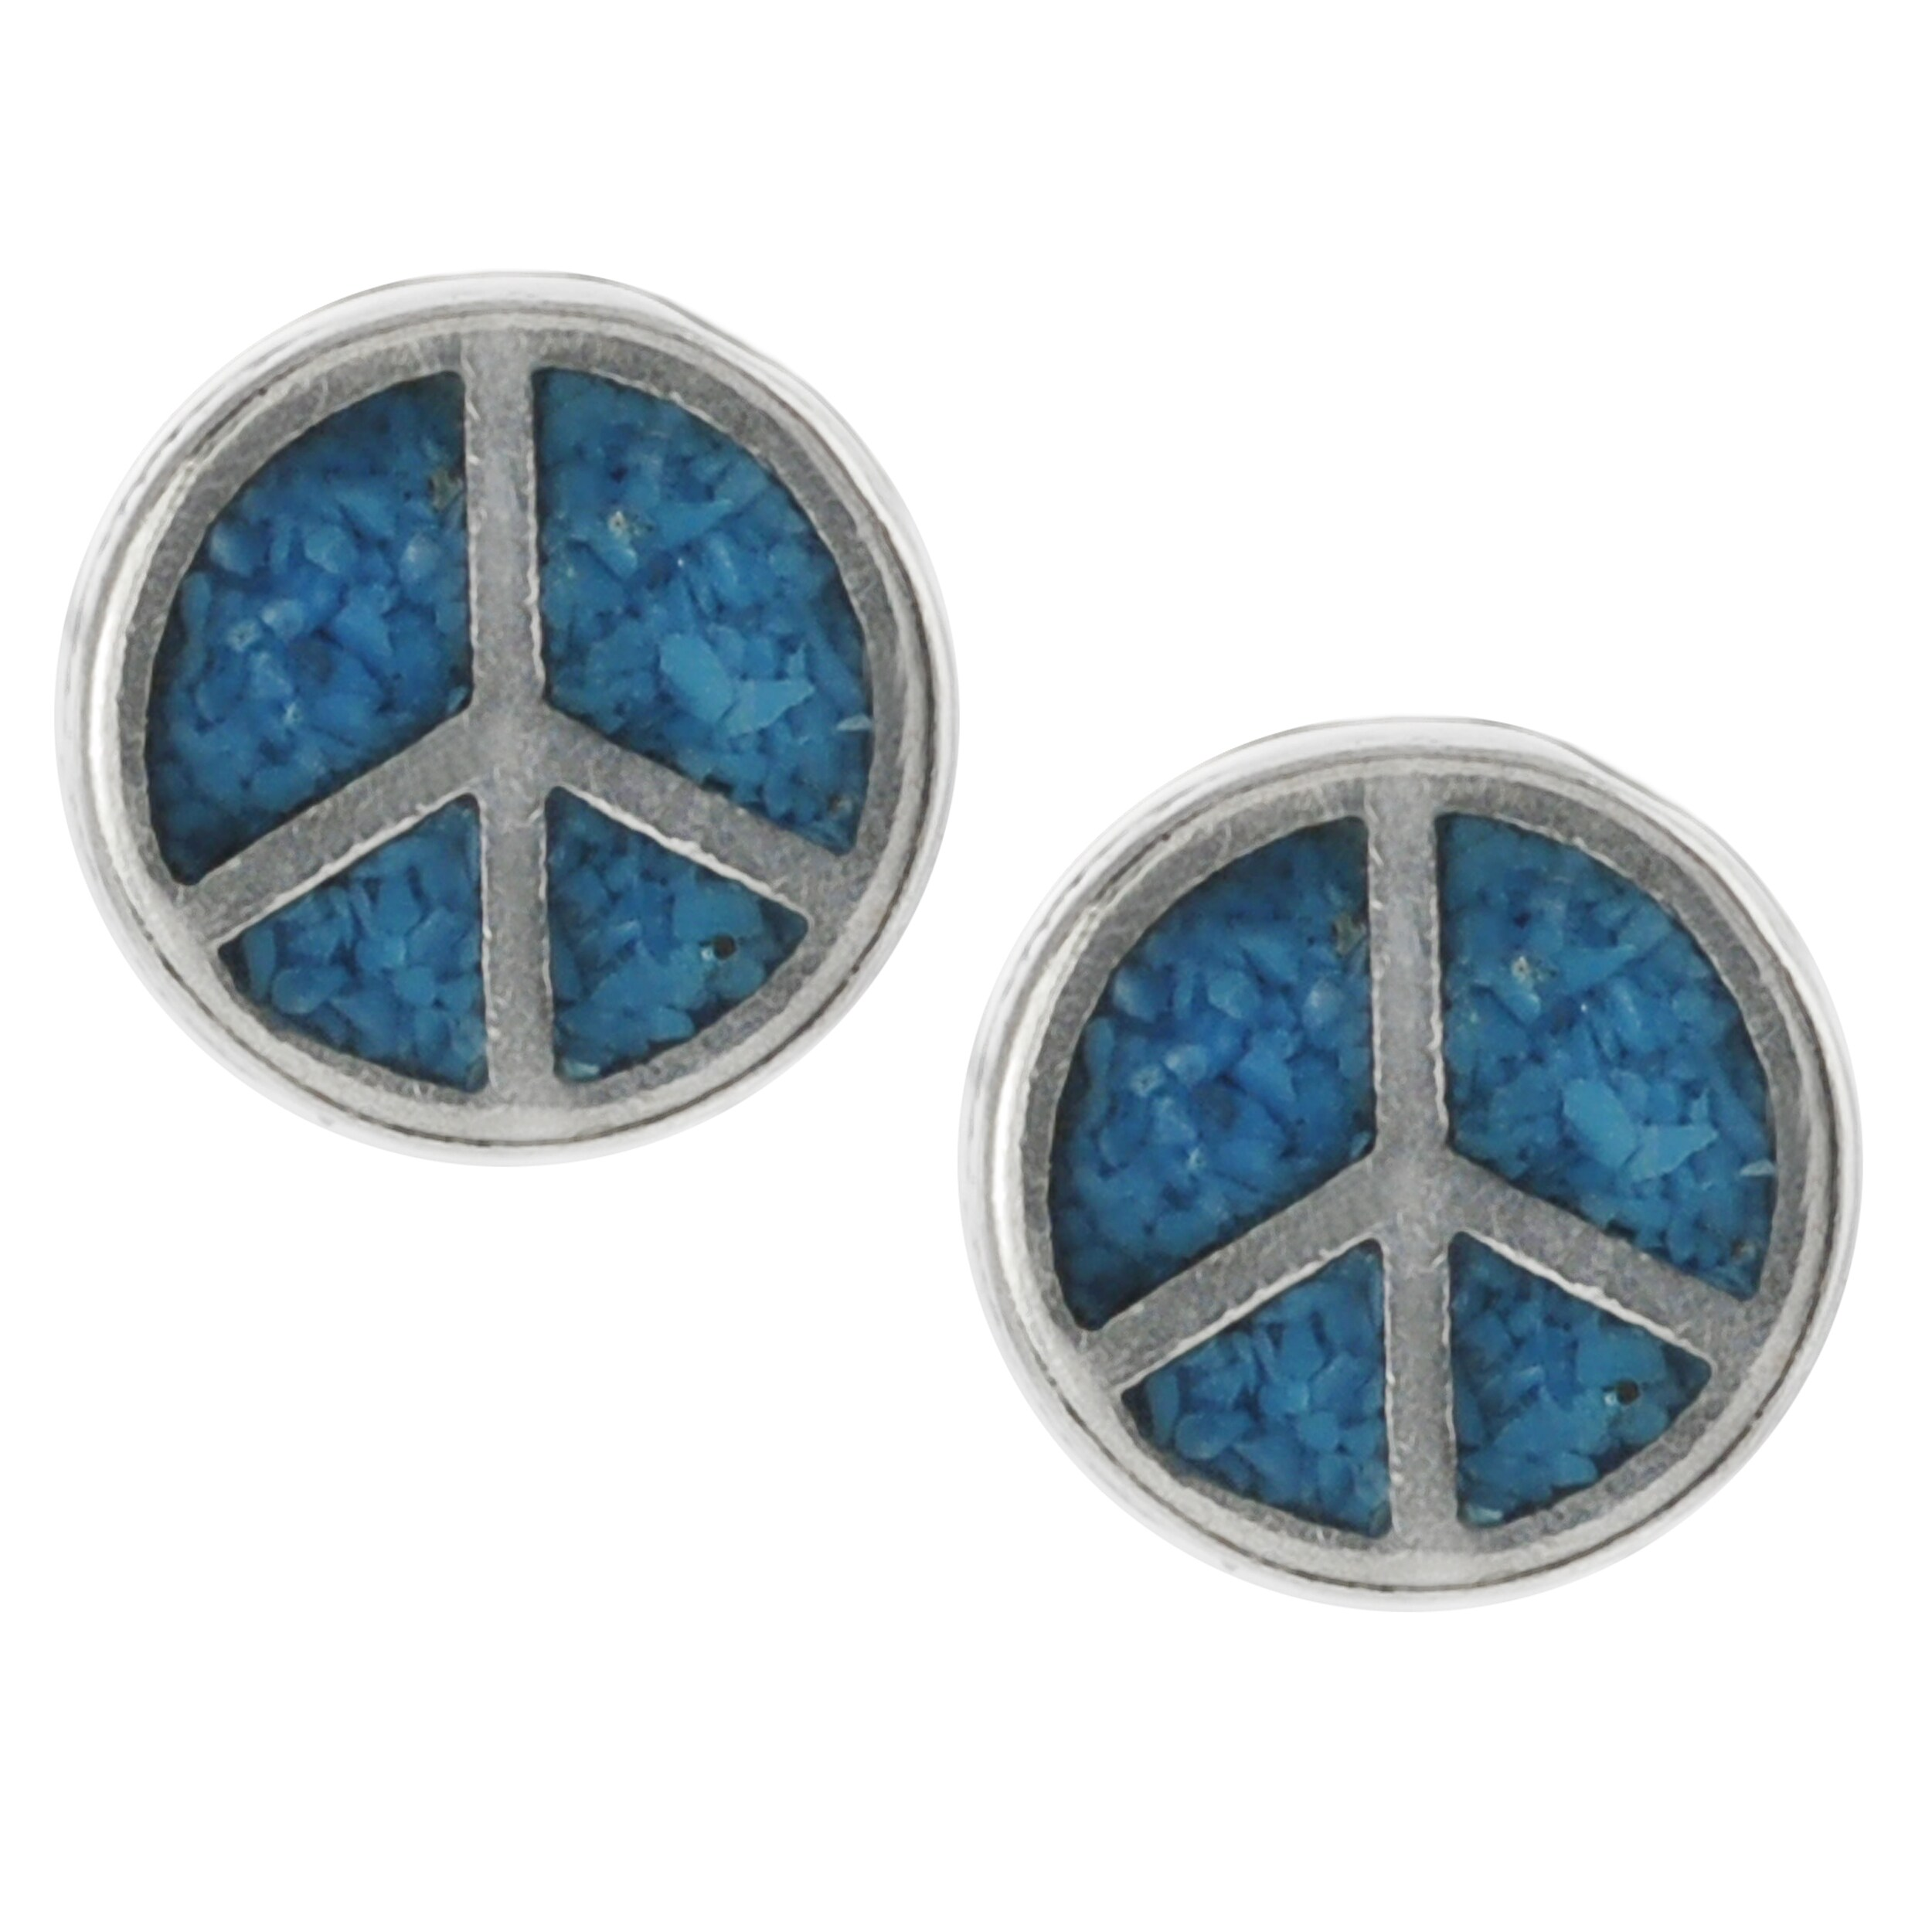 Journee Collection Sterling Silver Genuine Turquoise Peace Sign Stud Earrings